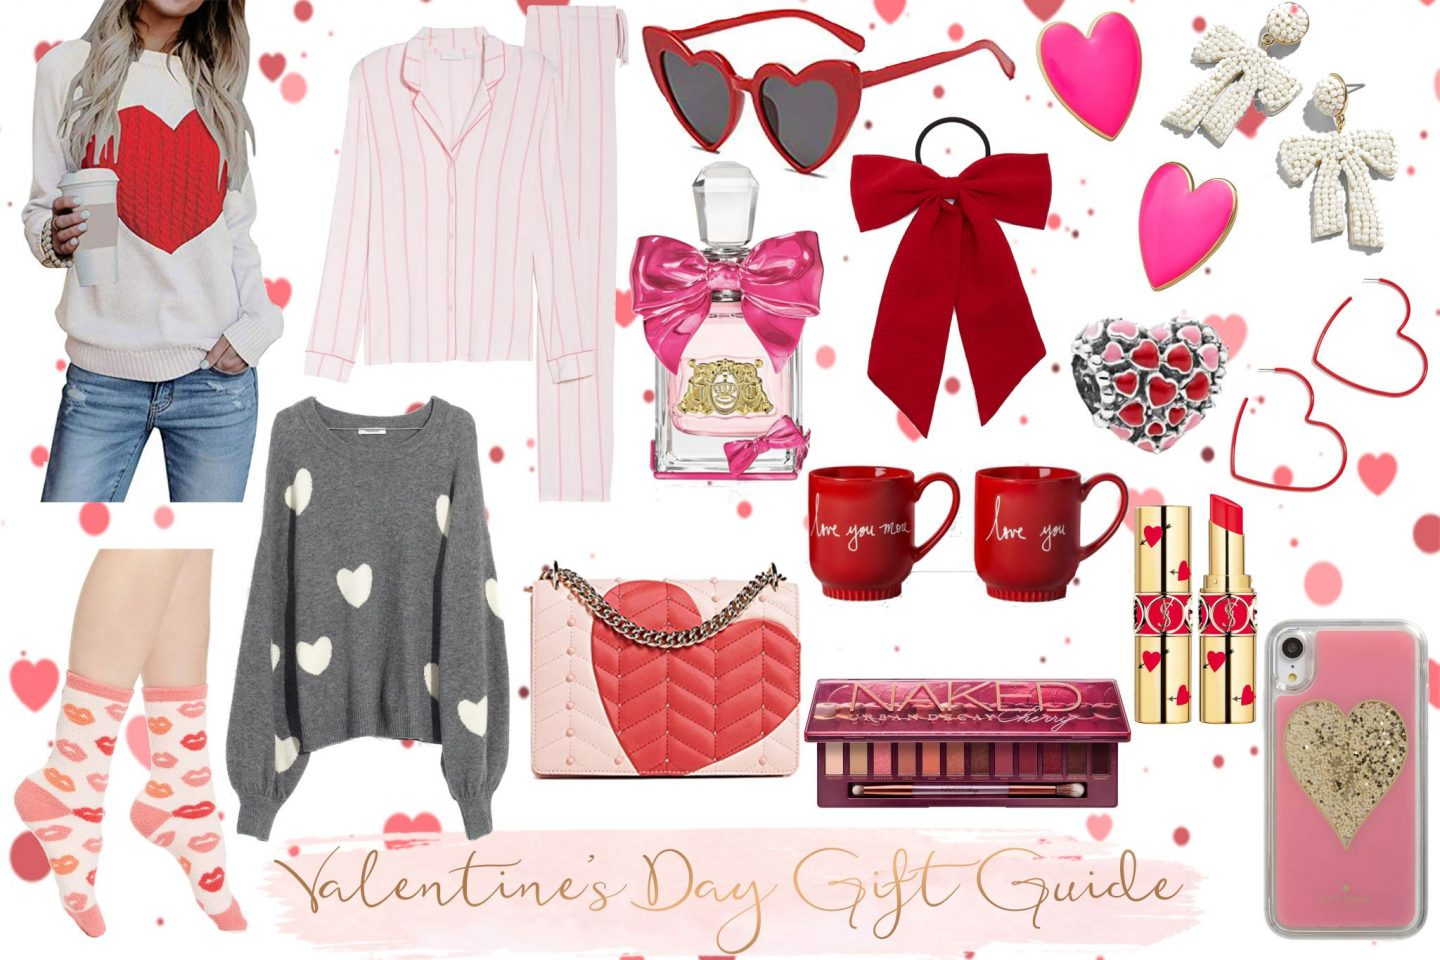 Best Valentine's Day Gift Guide